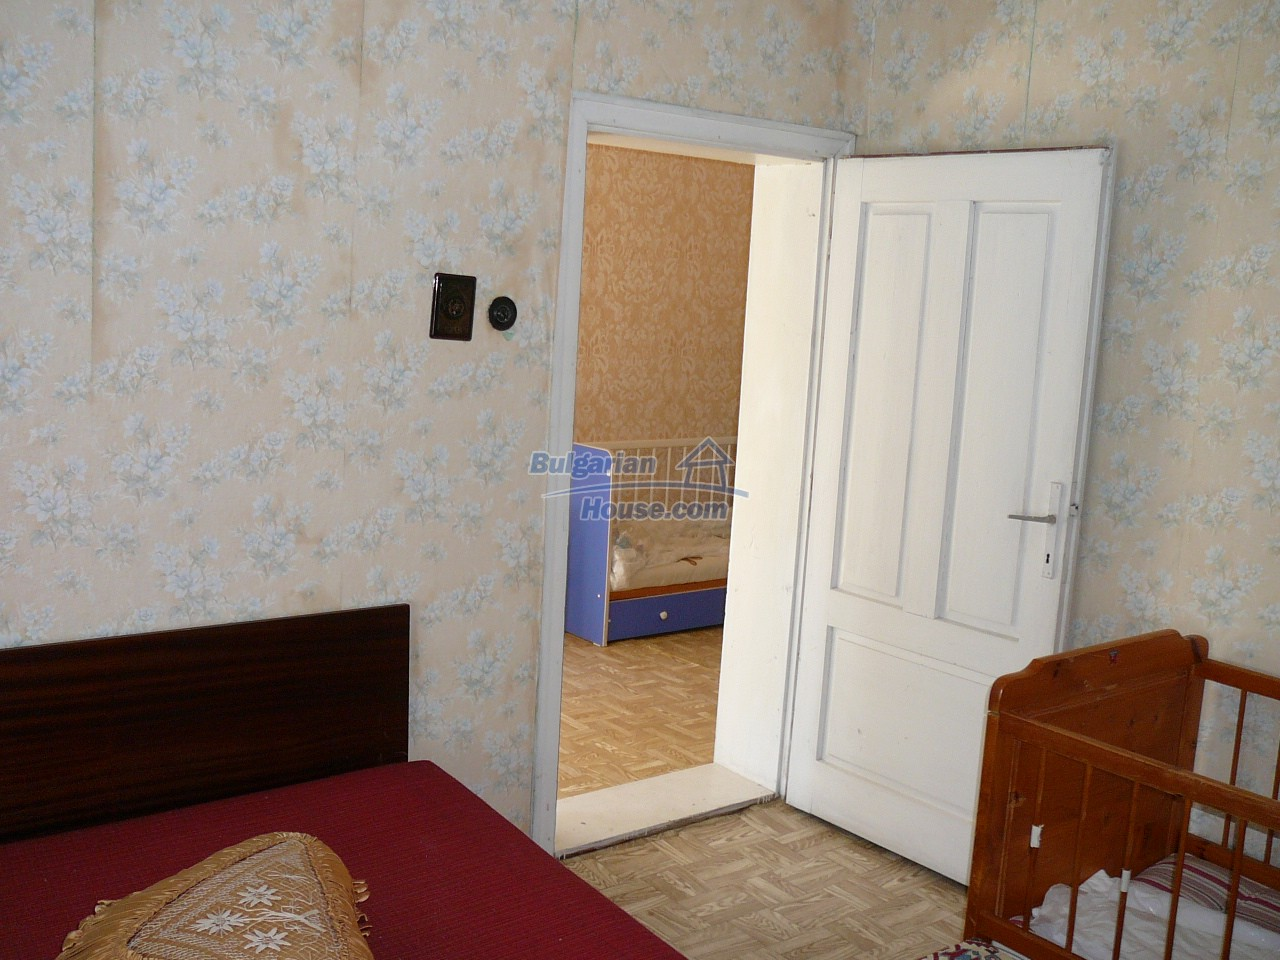 12527:35 - House  in good condition Stara Zagora region 55km to Plovdiv